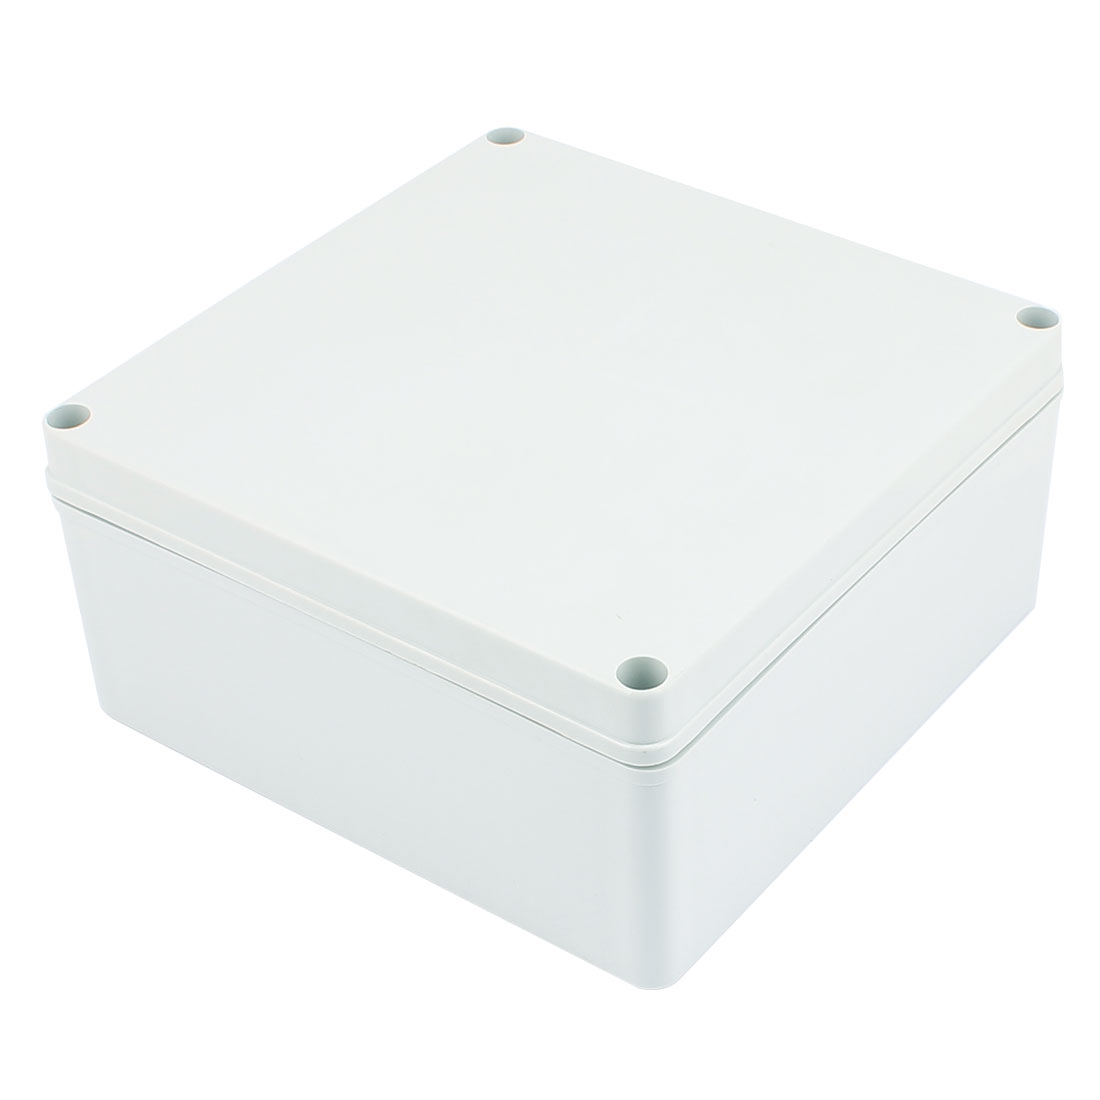 Dustproof IP65 Junction Box DIY Terminal Connection Enclosure Adaptable 192mm x192mm x 87mm